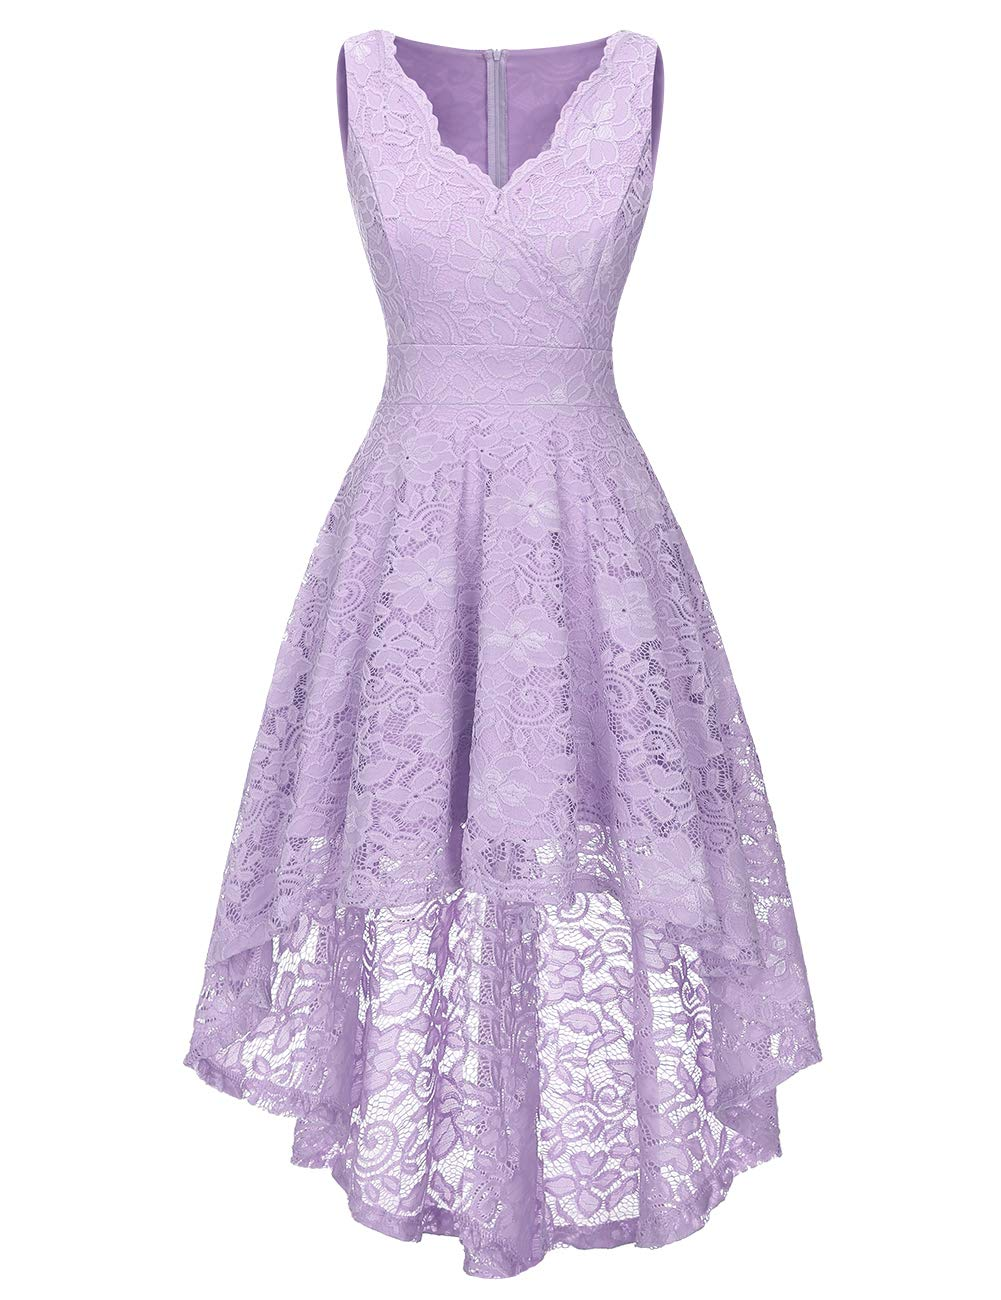 Floral Lace Dress Asymmetrical Hi-lo